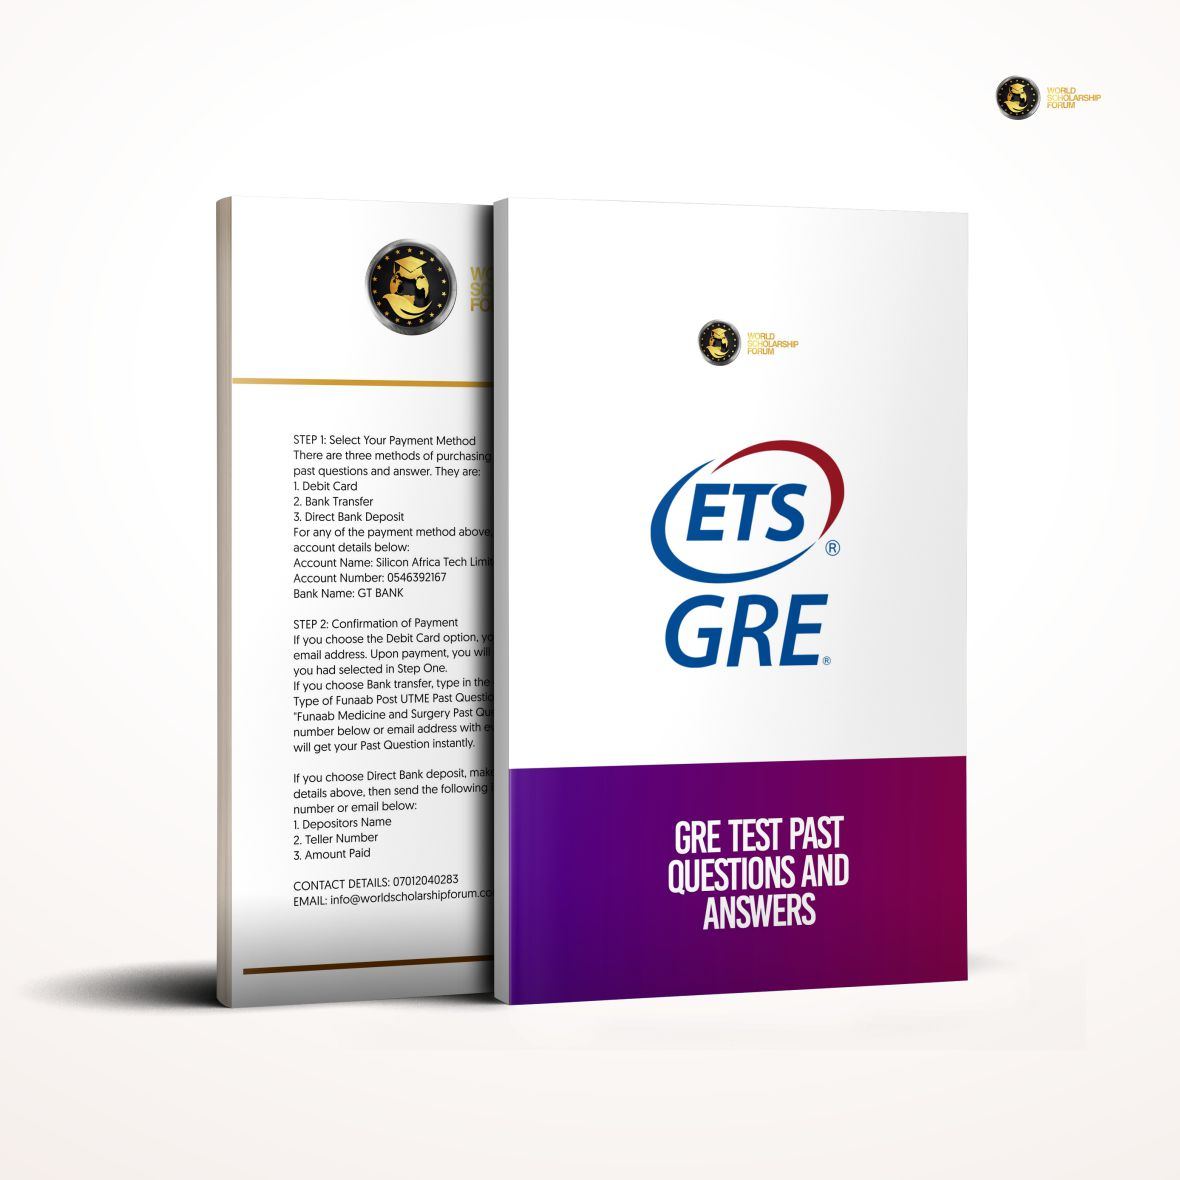 GRE Past Questions And Answers in 2021